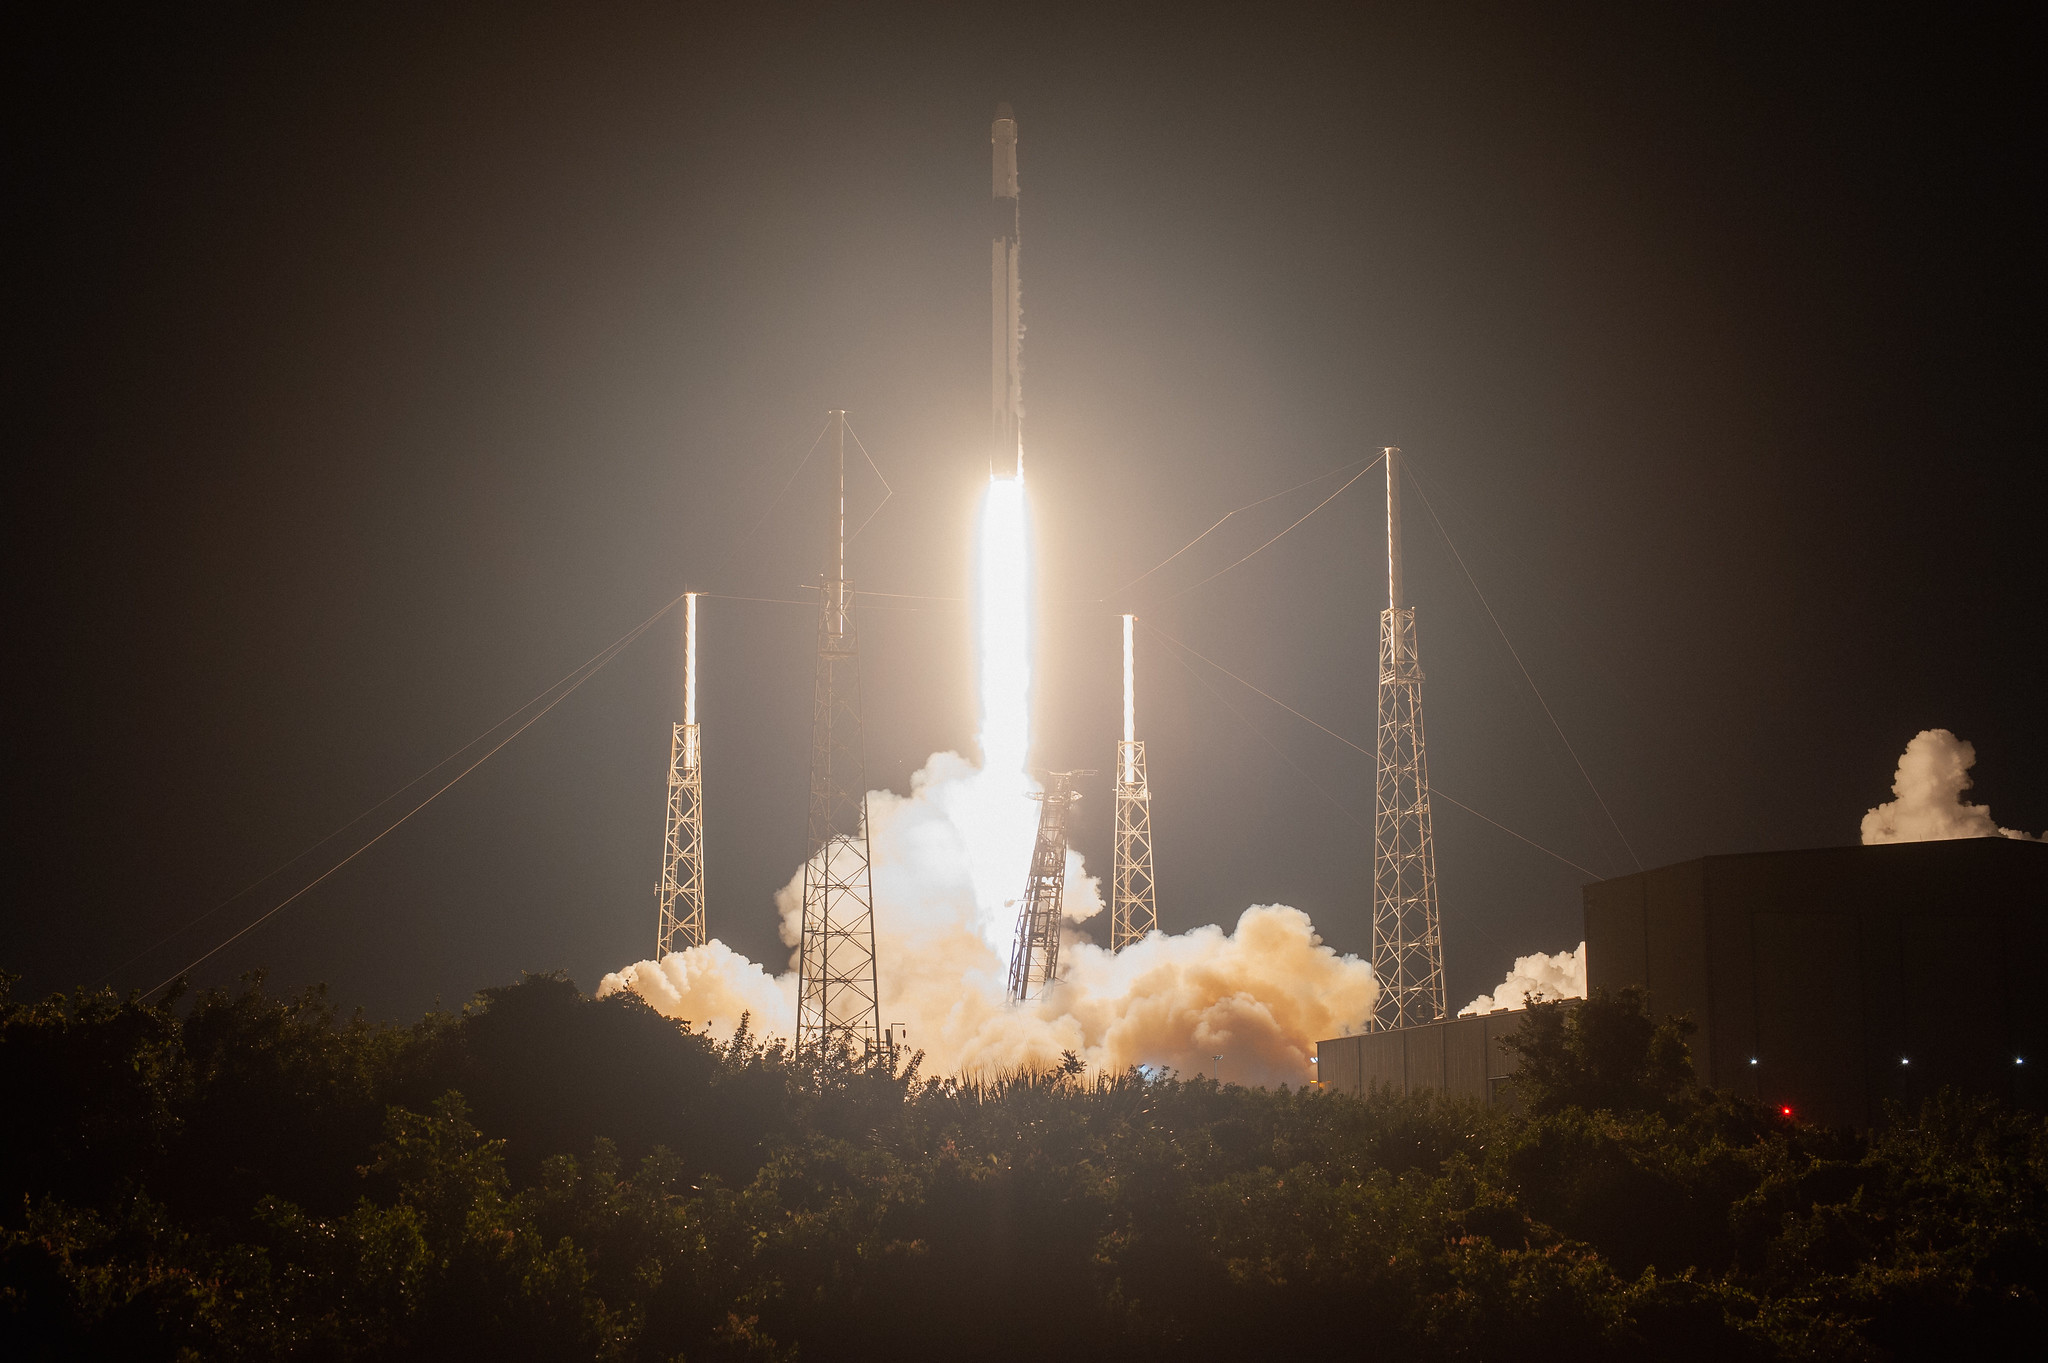 nasa spacex launch live feed - HD2048×1363